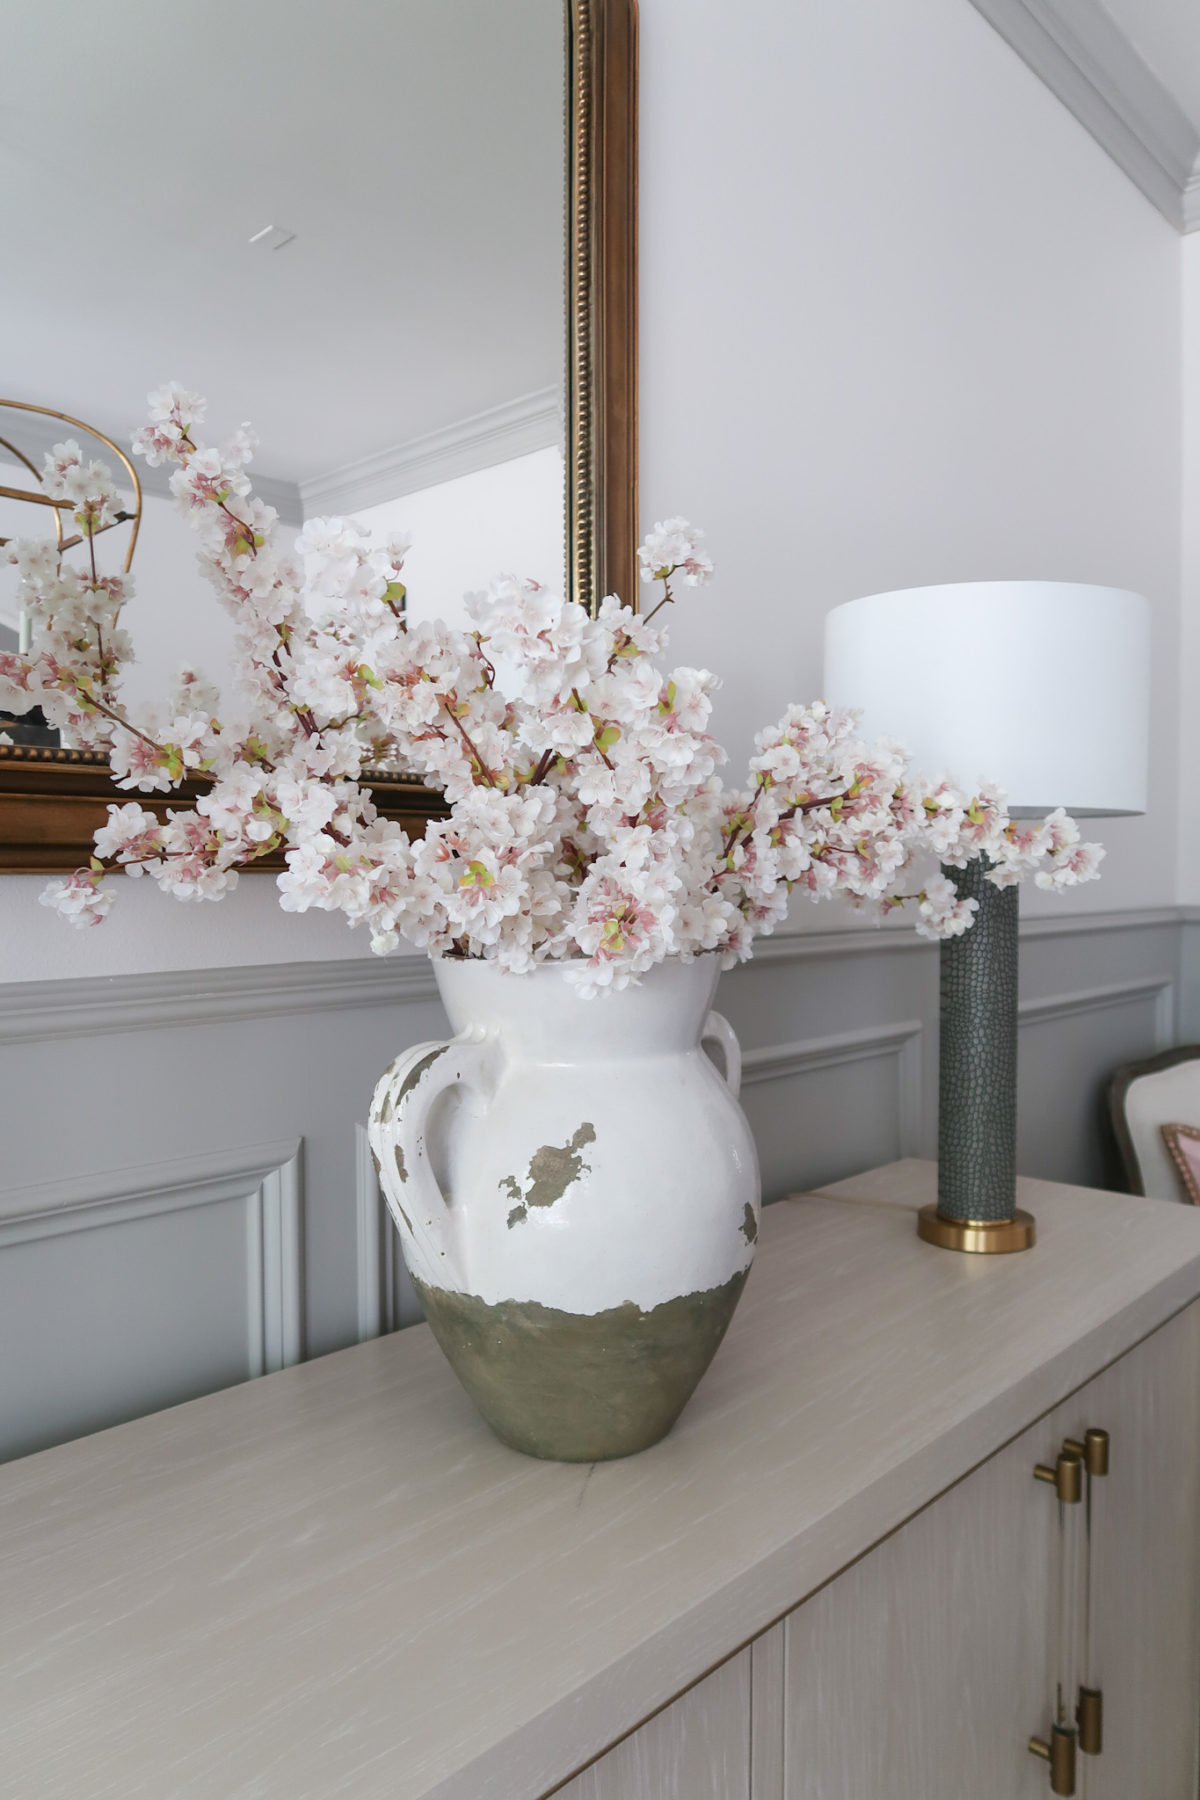 Spring Decor, Cherry Blossoms, Vase